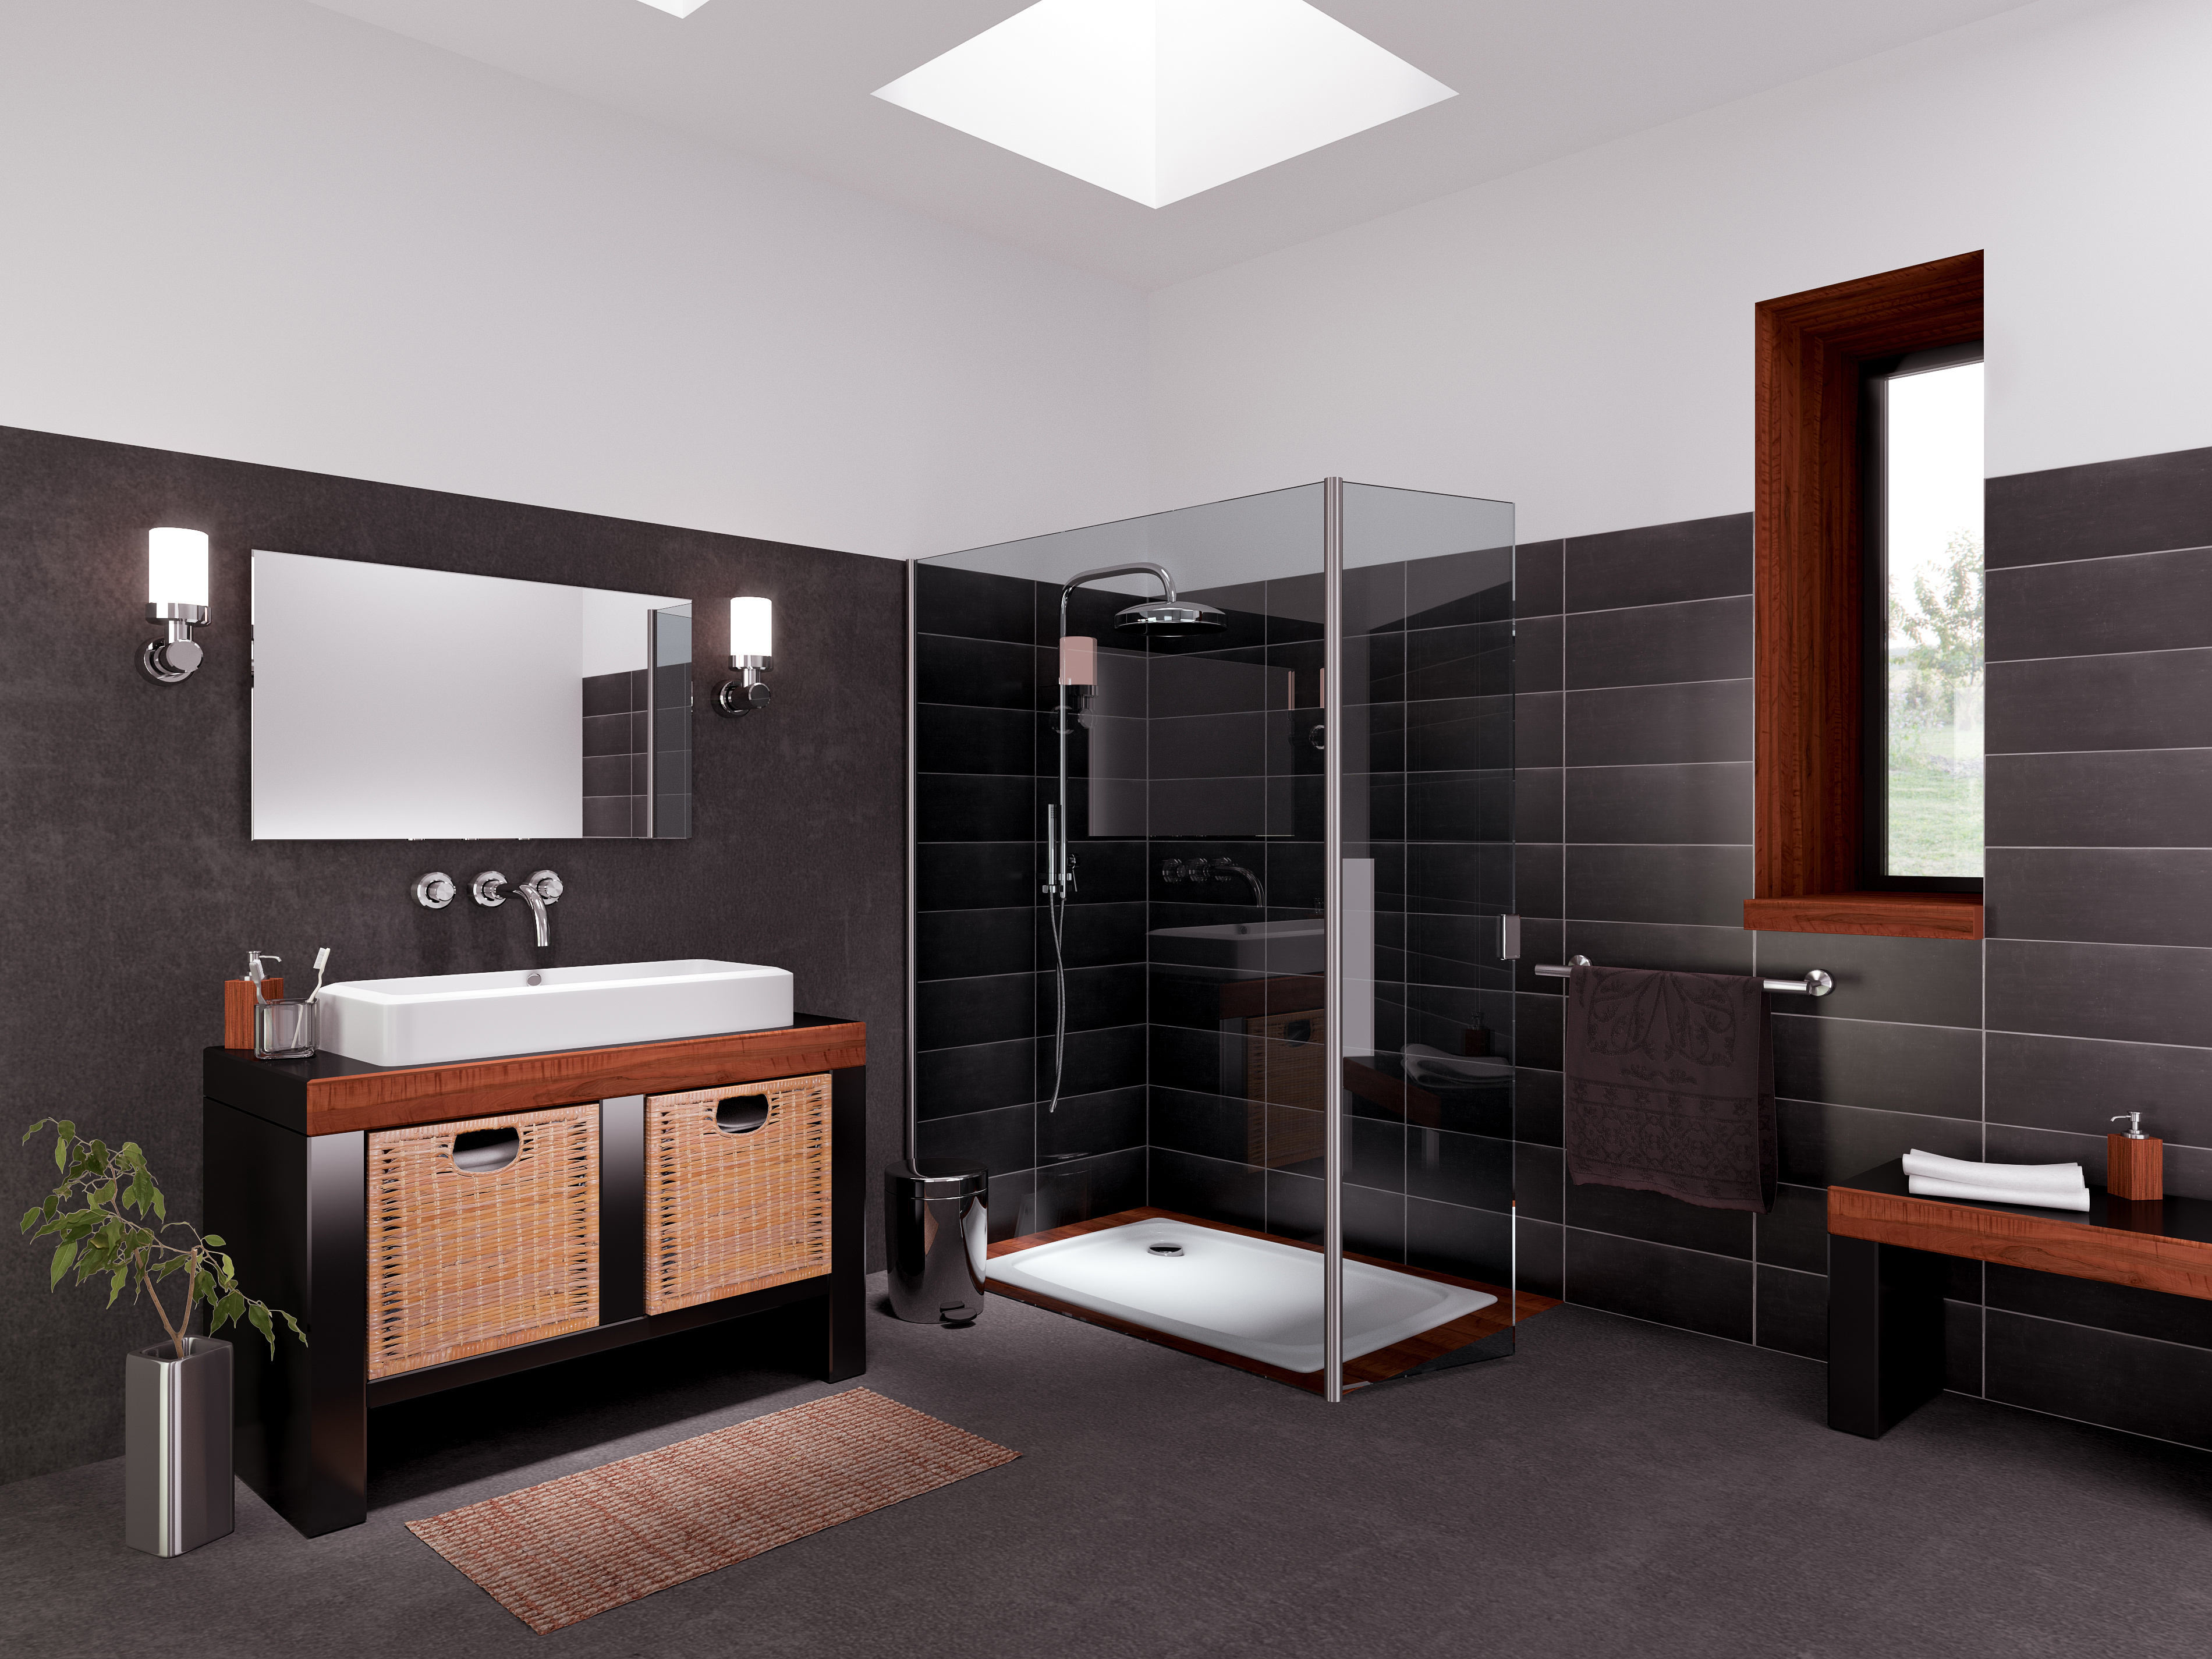 comment nettoyer des traces de rouille dans un bac douche. Black Bedroom Furniture Sets. Home Design Ideas